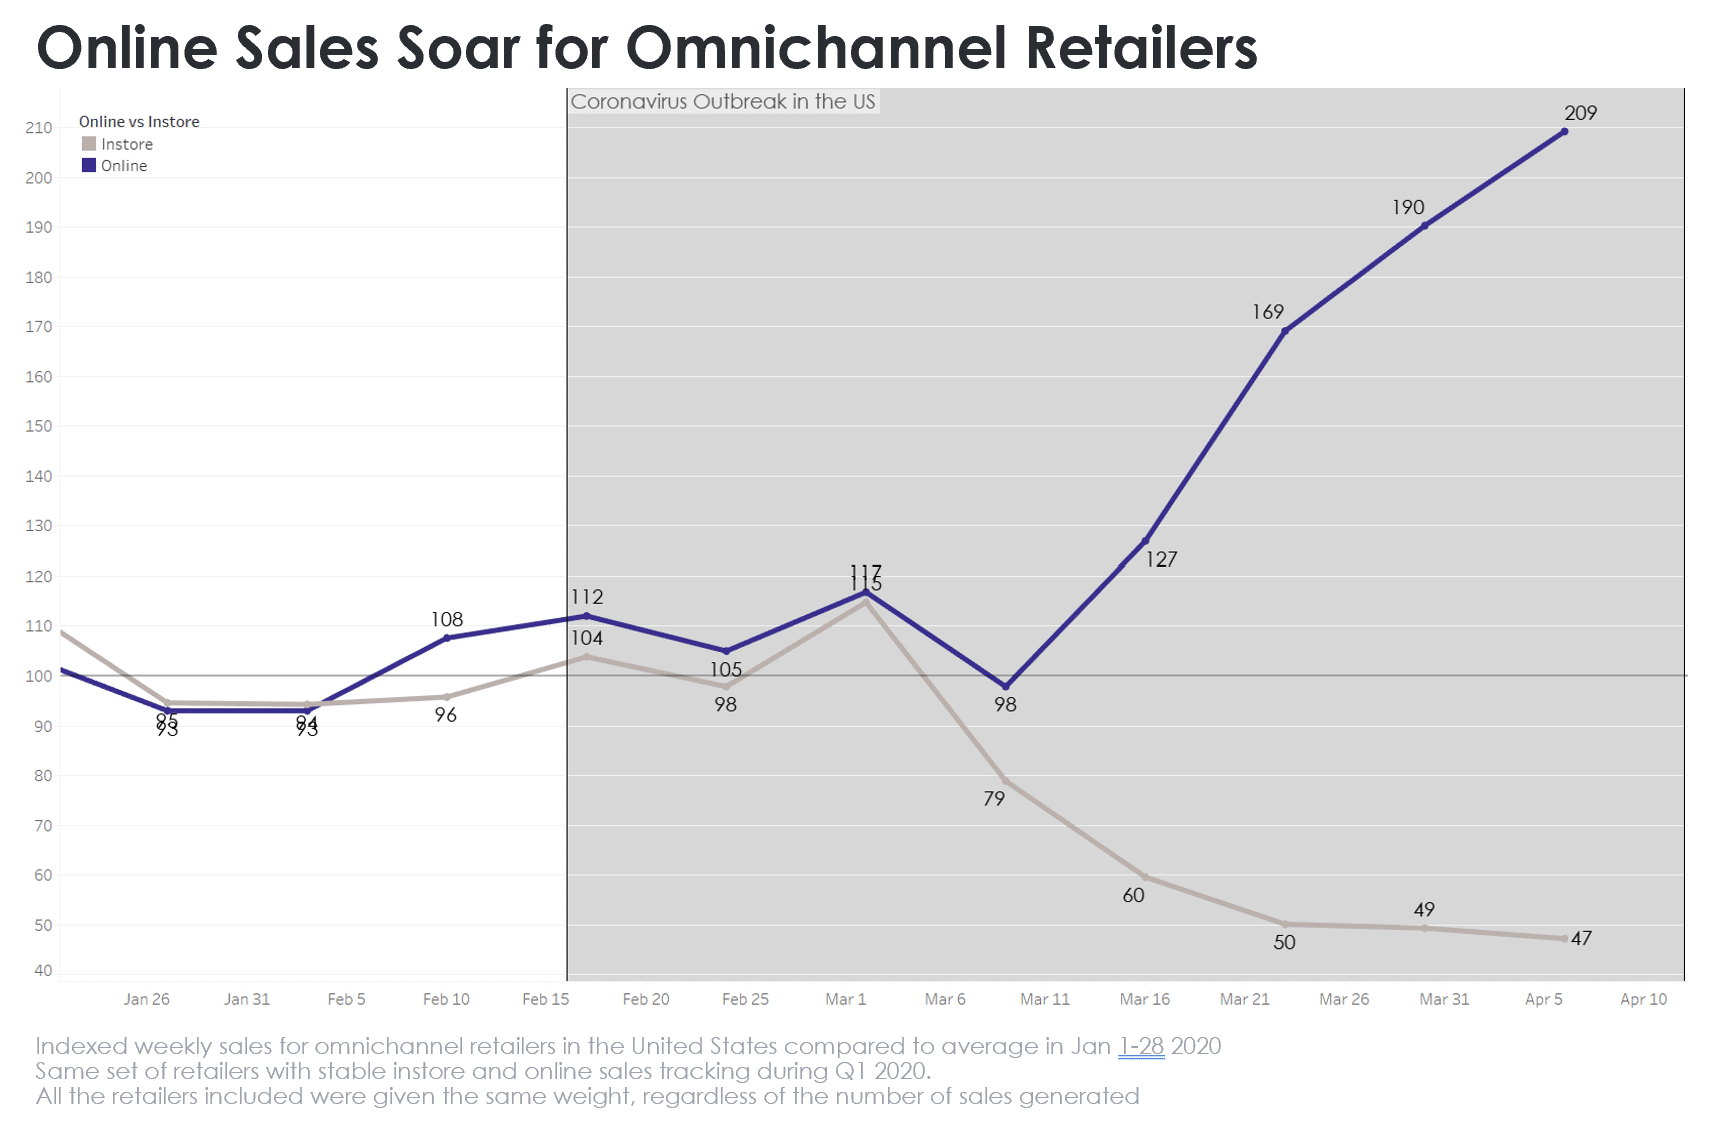 Chart. Online sales soar above in store sales for omnichannel retailers in the United States.